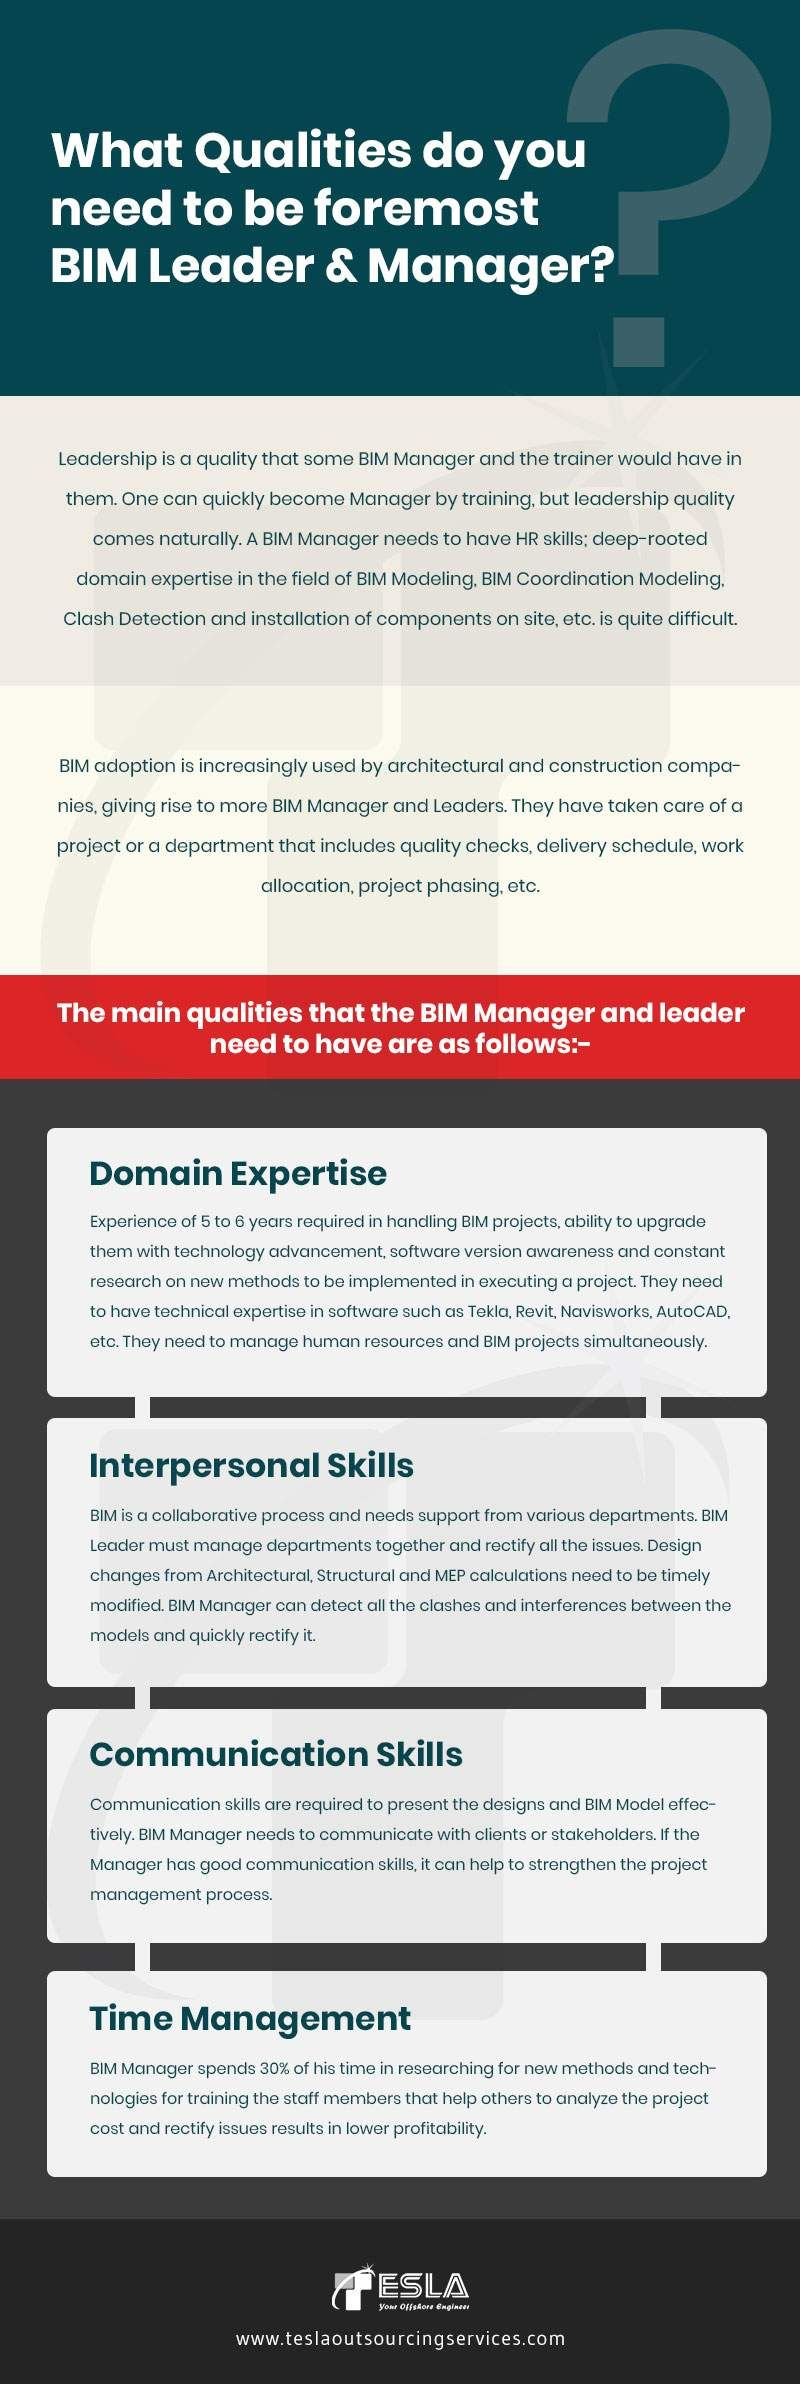 What Qualities do you need to be foremost BIM Leader